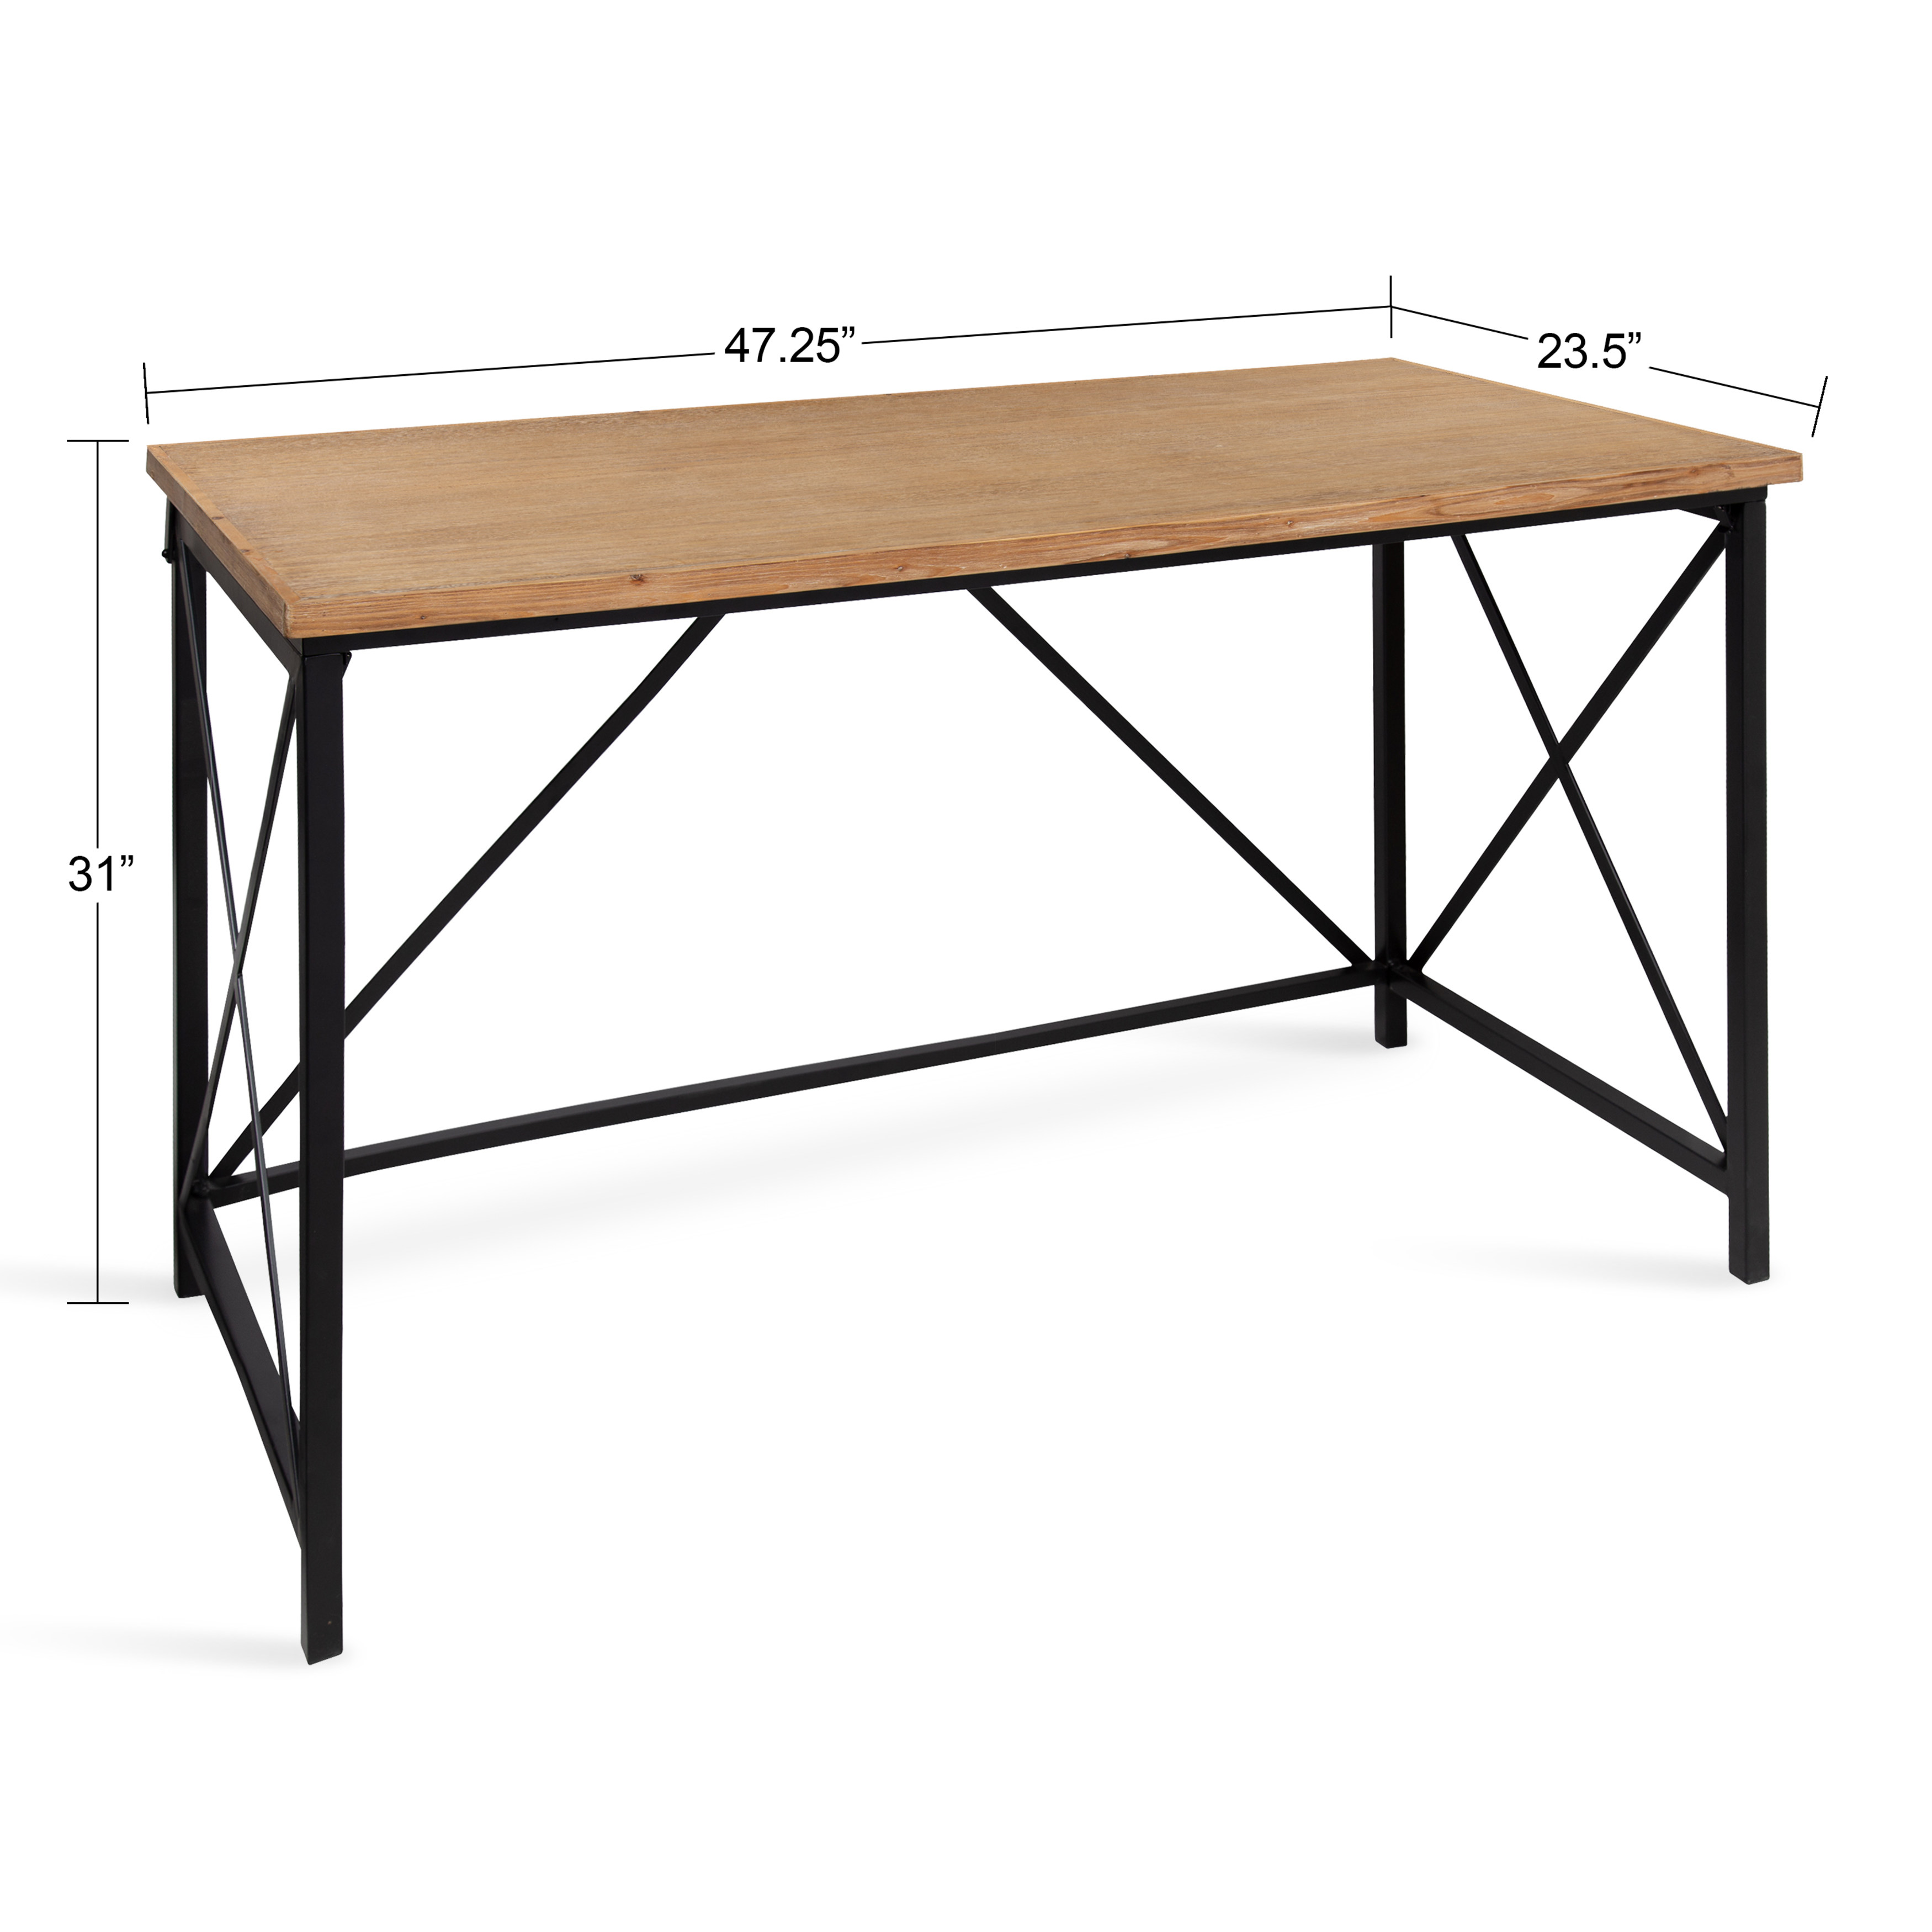 Kate and Laurel Lockridge Industrial Modern Farmhouse Style Wood and Metal  Computer Desk Work or Craft Table, Light Rustic Brown and Black